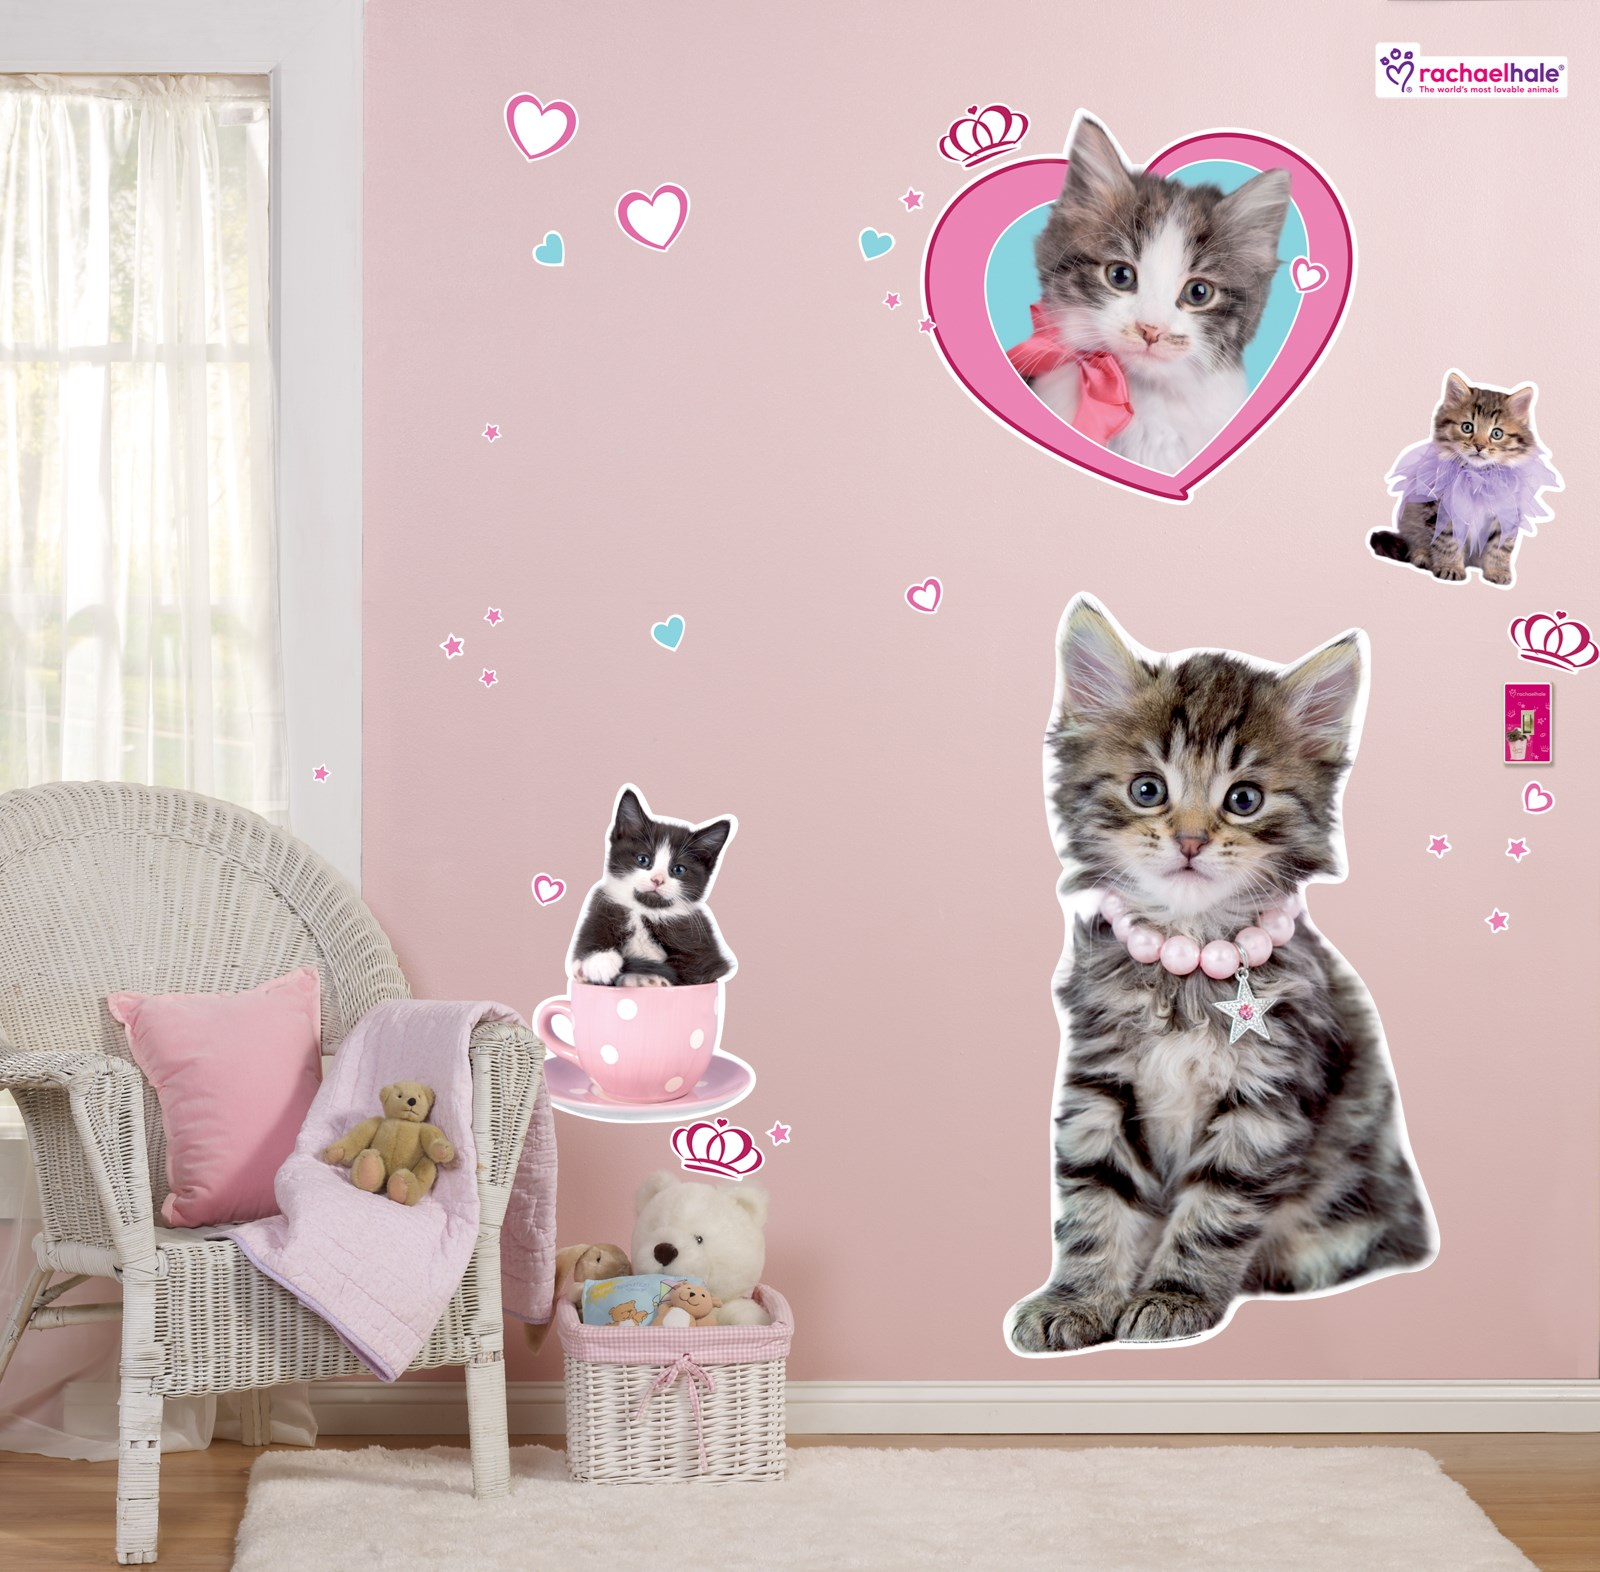 rachaelhale glamour cats giant wall decals cat collection wall sticker wall stickers